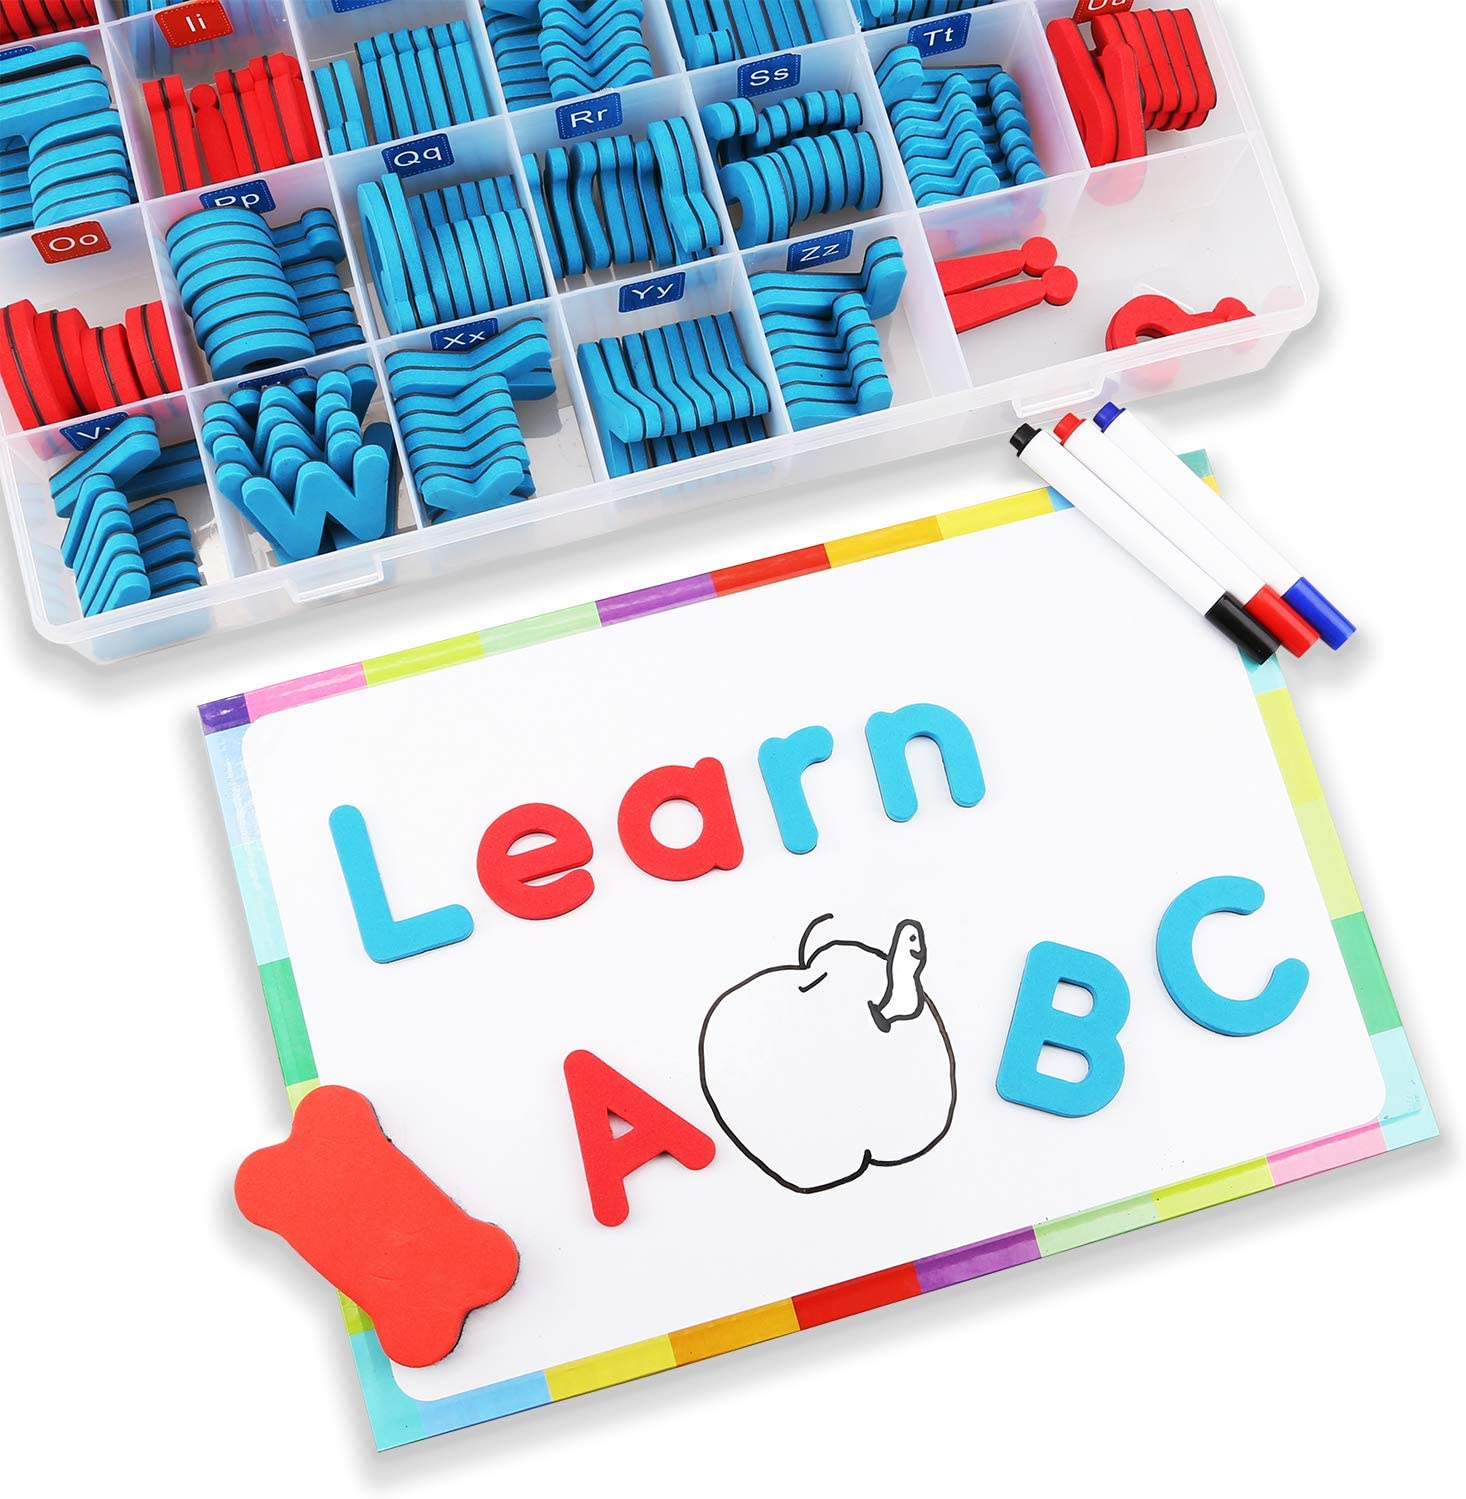 Alphabet Lowercase and Uppercase Foam Magnets with White Board 5-Colors CHUCHIK ABC Magnetic Letters Set for Kids 4 Pens and Eraser.